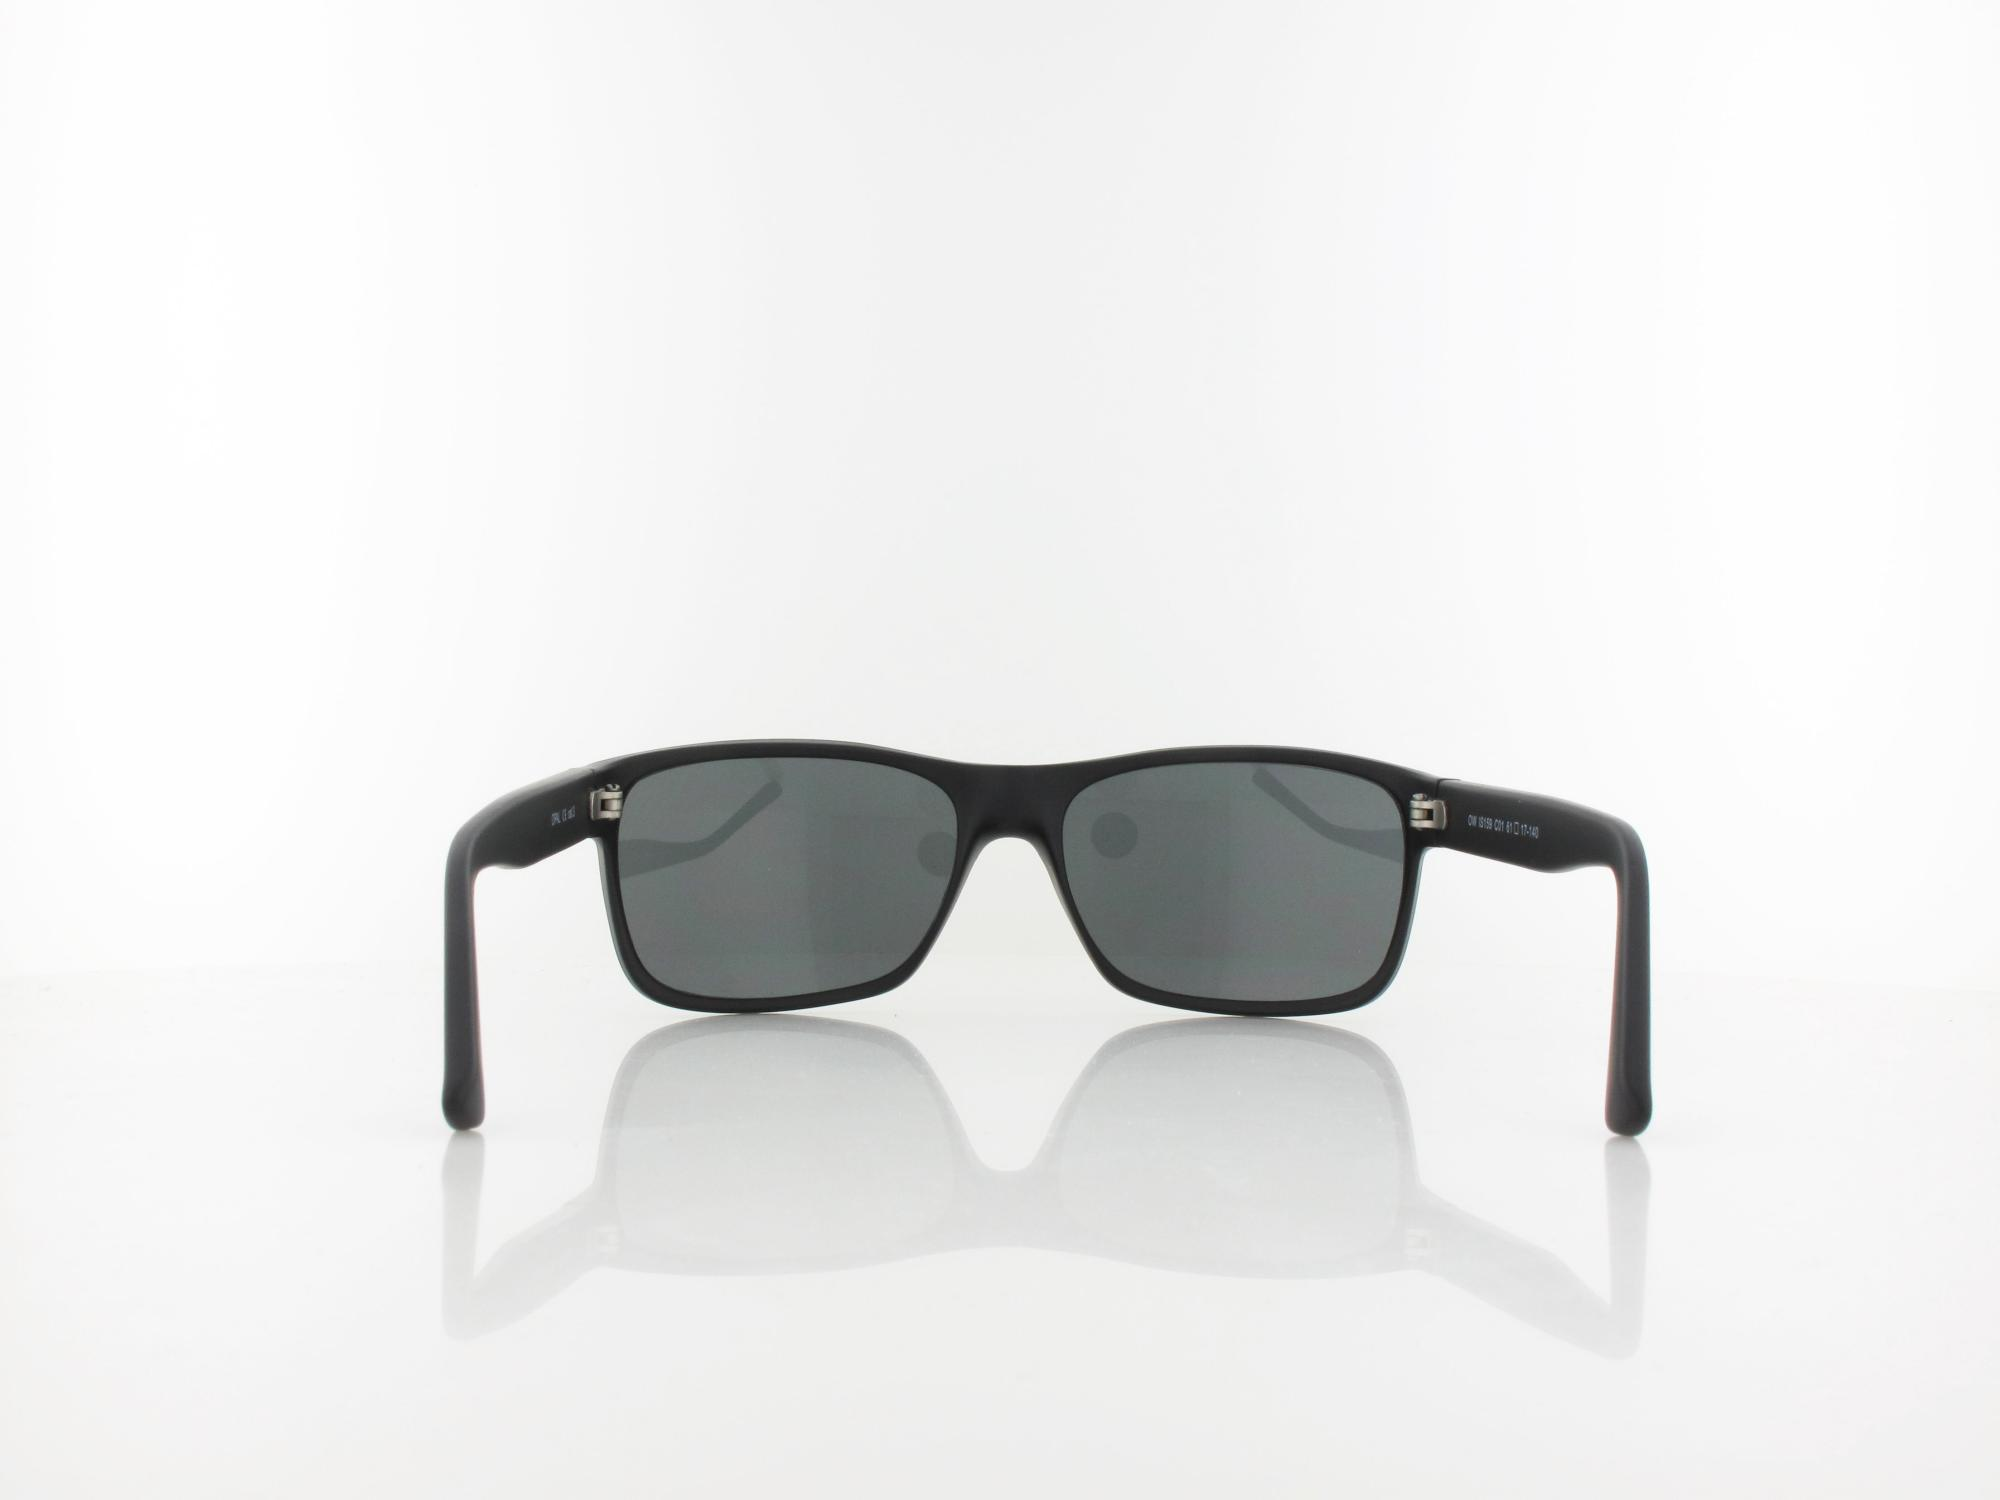 Brilando | OW IS159 C01 61 | black / grey